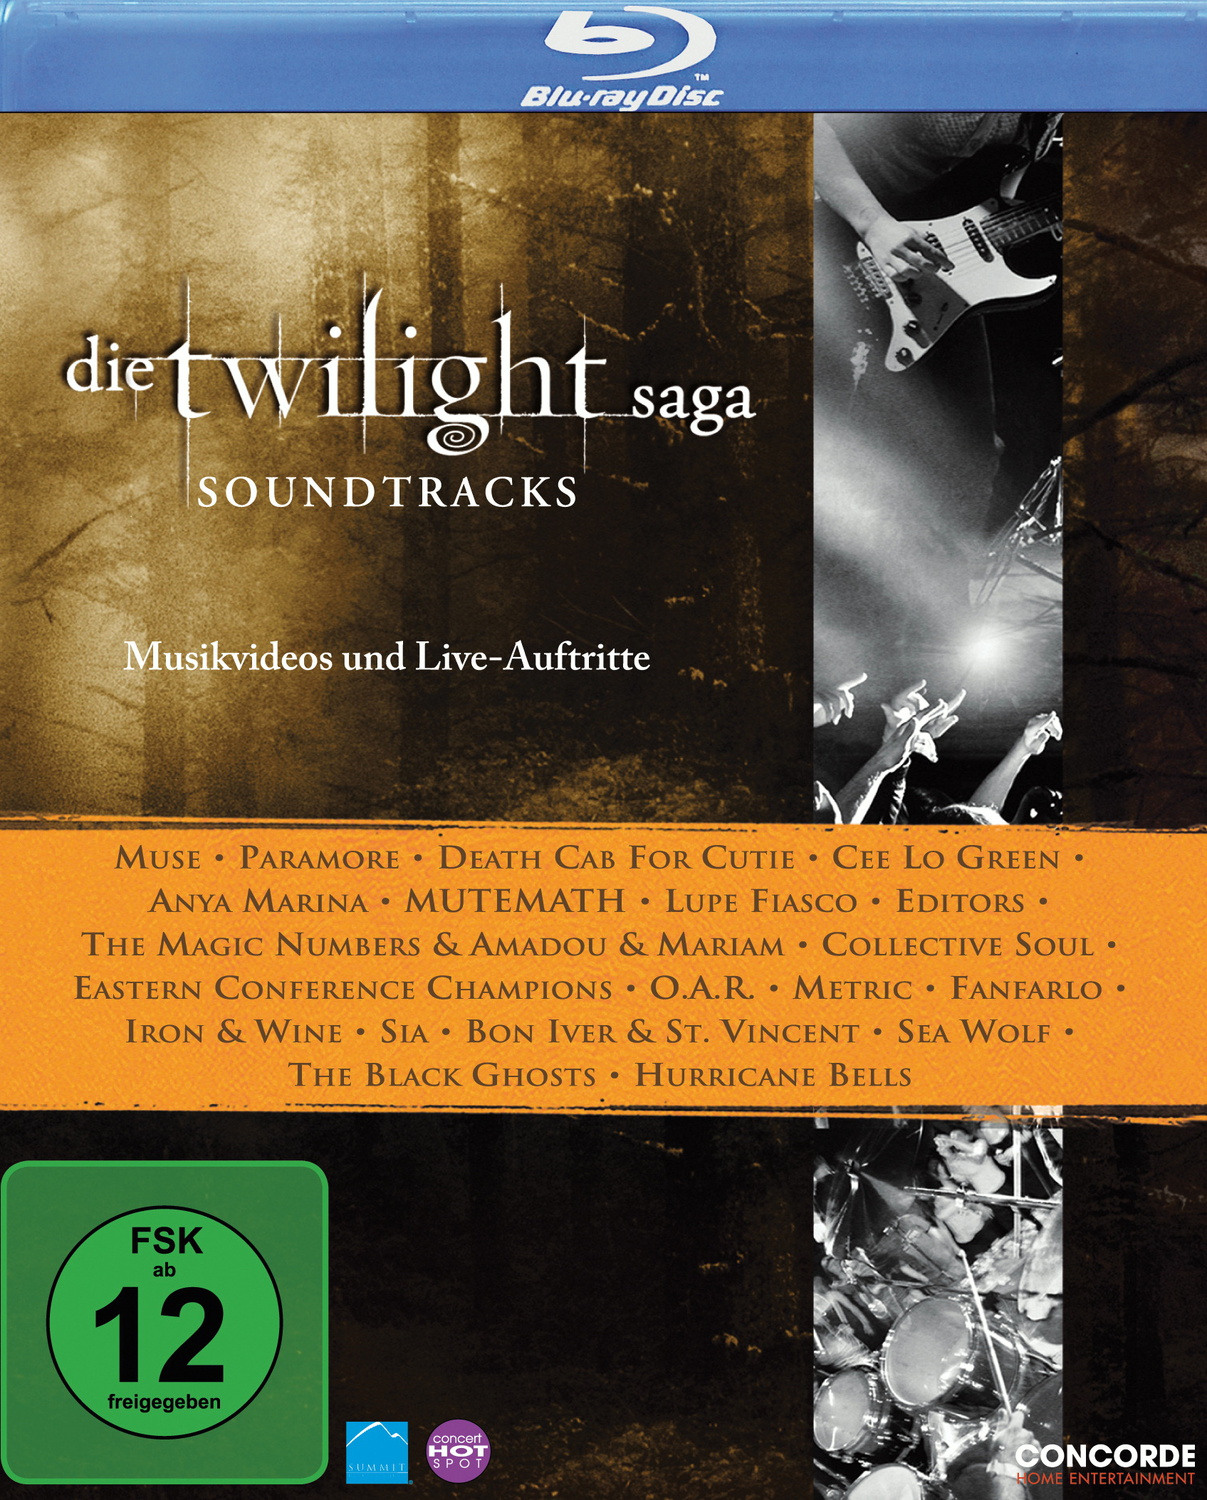 Die Twilight Saga - Soundtracks (Musikvideos un...